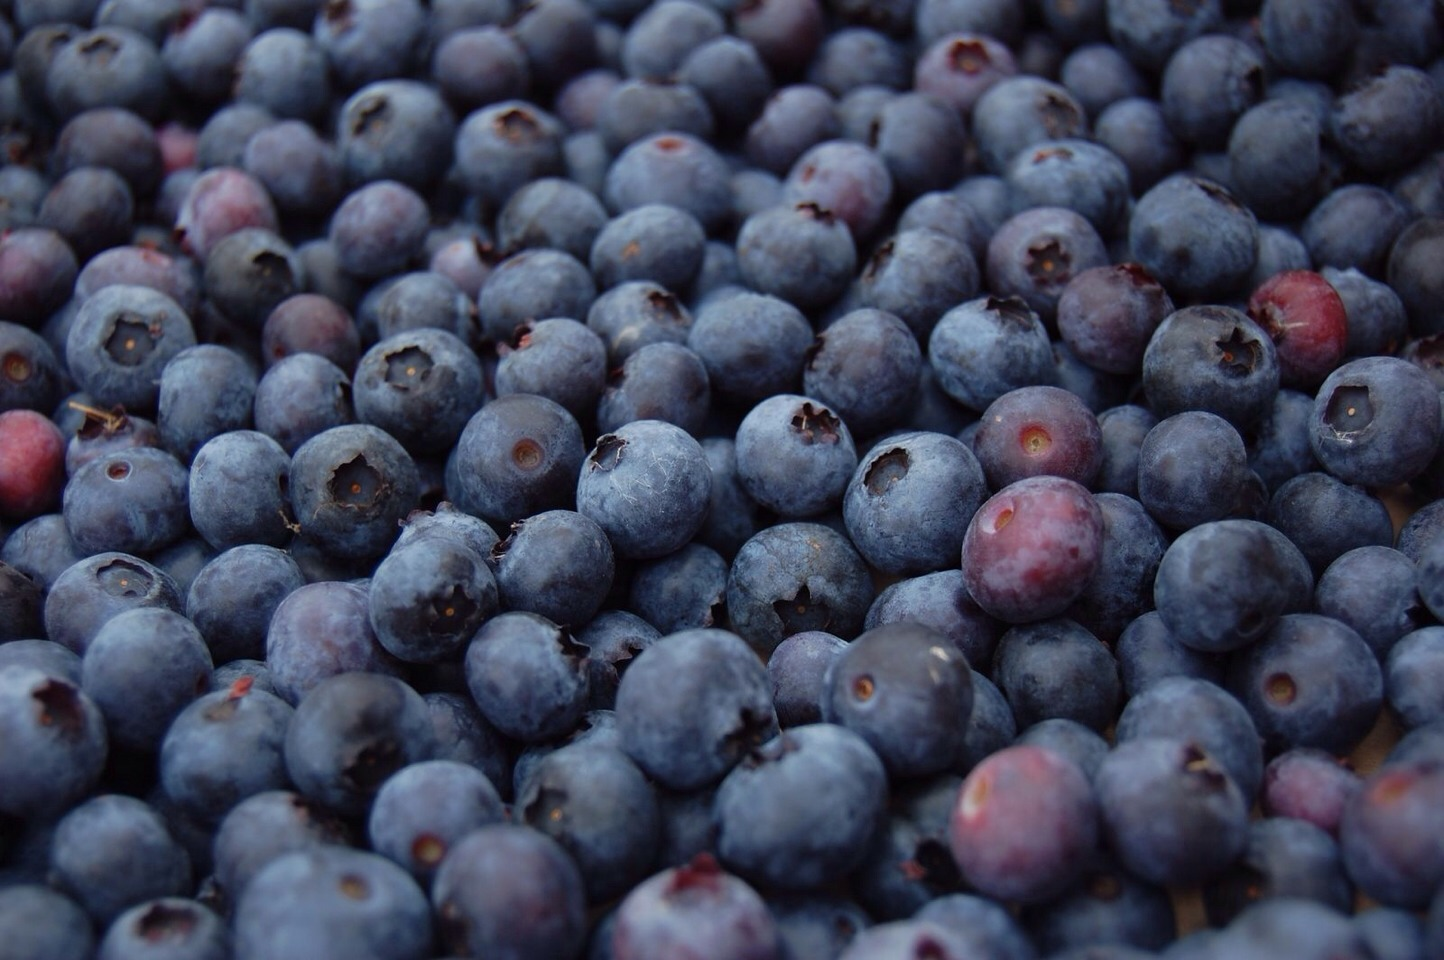 --> Blueberries have highest antioxidant levels. --> Blueberries combat the factors that result in metabolic syndrome. This means that blueberries take on insulin resistance, hypertension, obesity, and cholesterol.